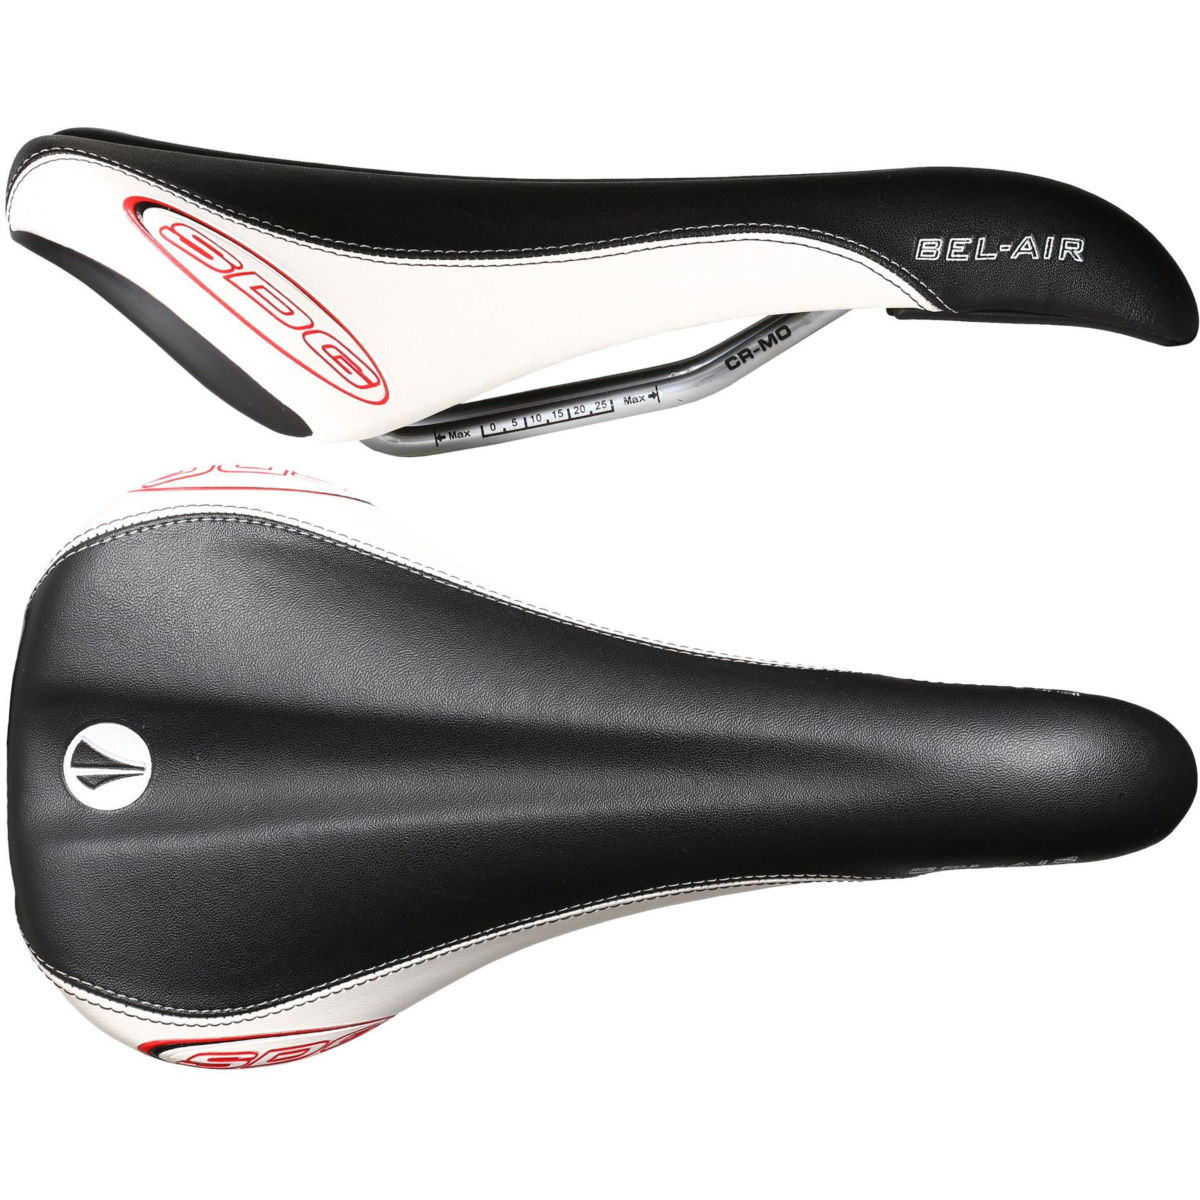 Selle SDG Bel Air RL (rails en chrome-molybdène) - Synthetic Leather